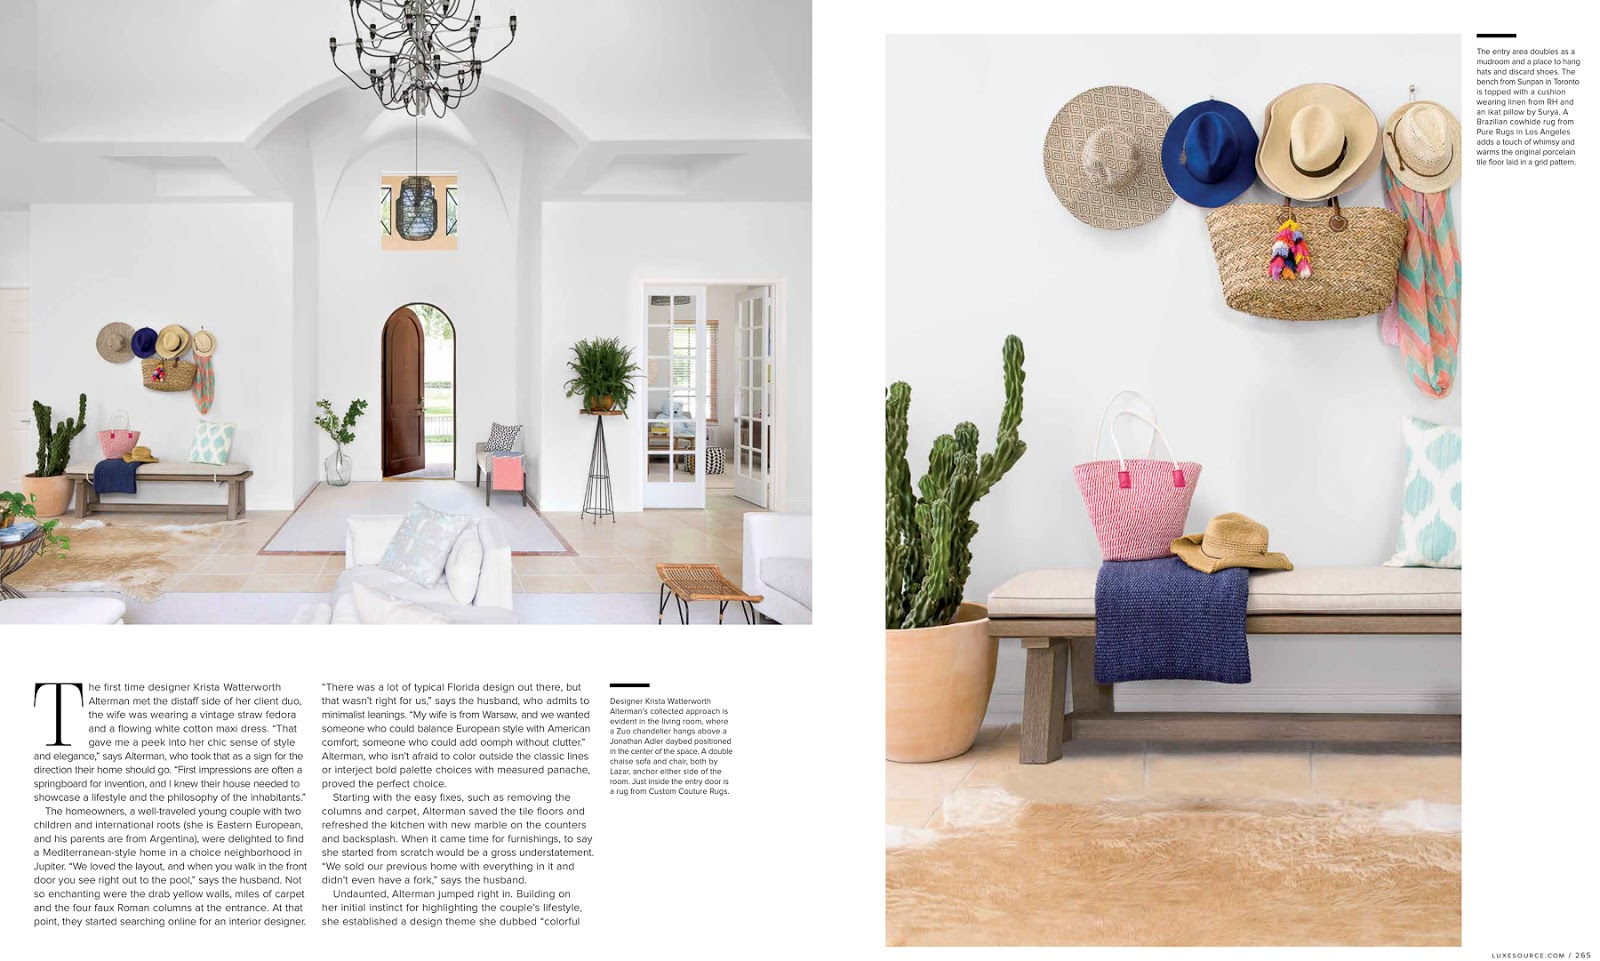 Palm Beach Gardens For Luxe Magazine Interior Design By Krista Watterworth Check It Out In March April 2016 Issue On Newsstands Now